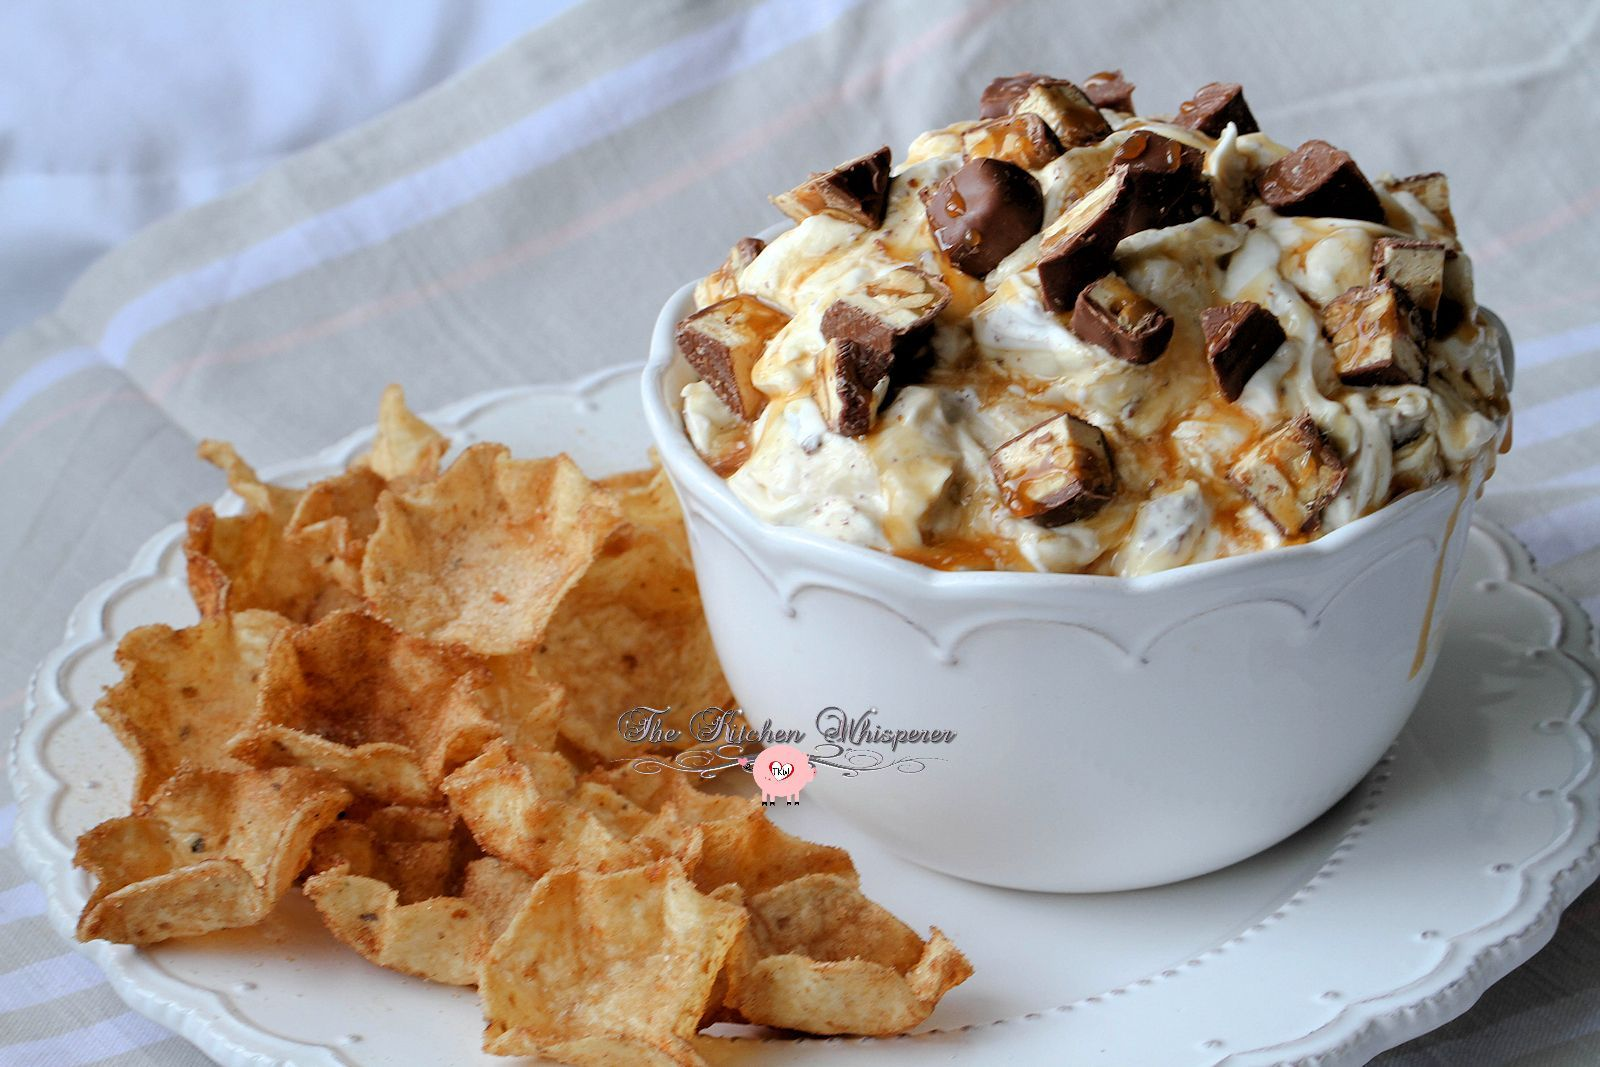 SNICKERS® Cheesecake Dip with Cinnamon Sugar TOSTITO® Scoops #snickerscheesecake Snickers Cheesecake Dip #snickers #sponsored #nobake #cheesecake #caramel #dip #cheesecakedip #candybar #appetizers #dips #cinnamonchips #tortillas #entertaining #snickerscheesecake